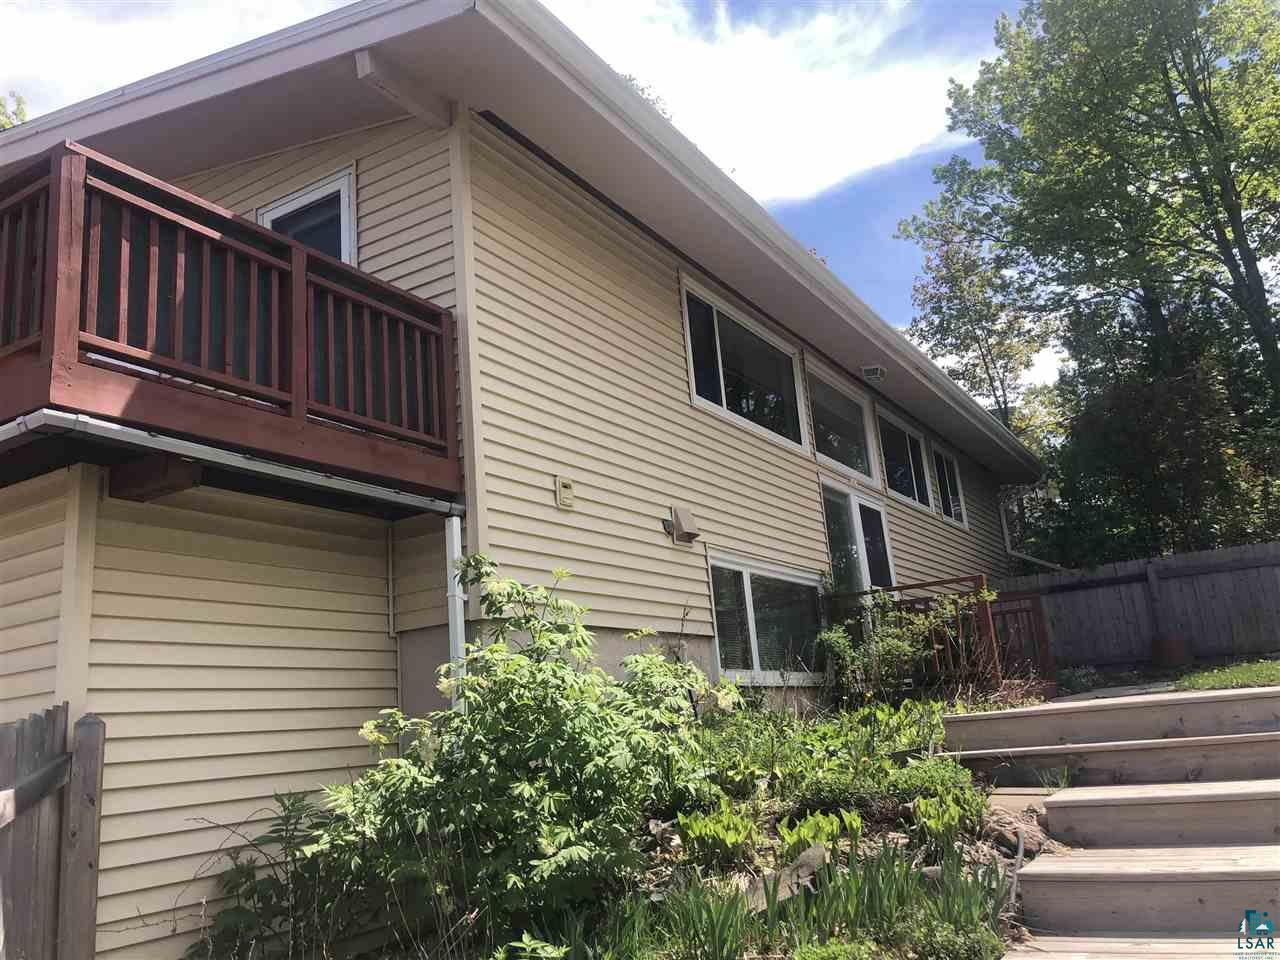 Photo of 1154 Missouri Ave, Duluth, MN 55811